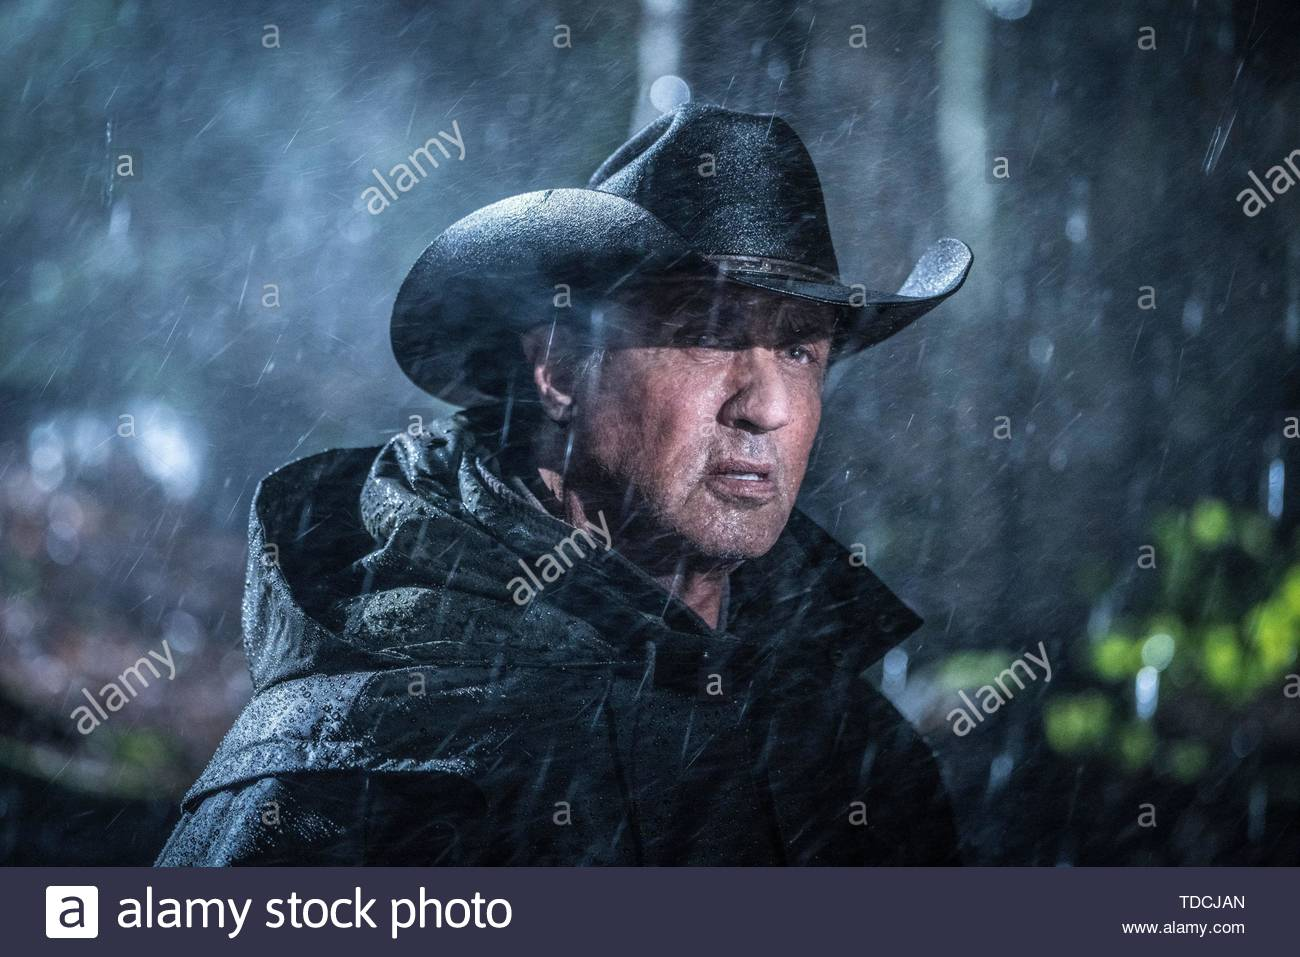 SYLVESTER STALLONE in RAMBO: LAST BLOOD (2019). Credit: LIONSGATE / Album - Stock Image